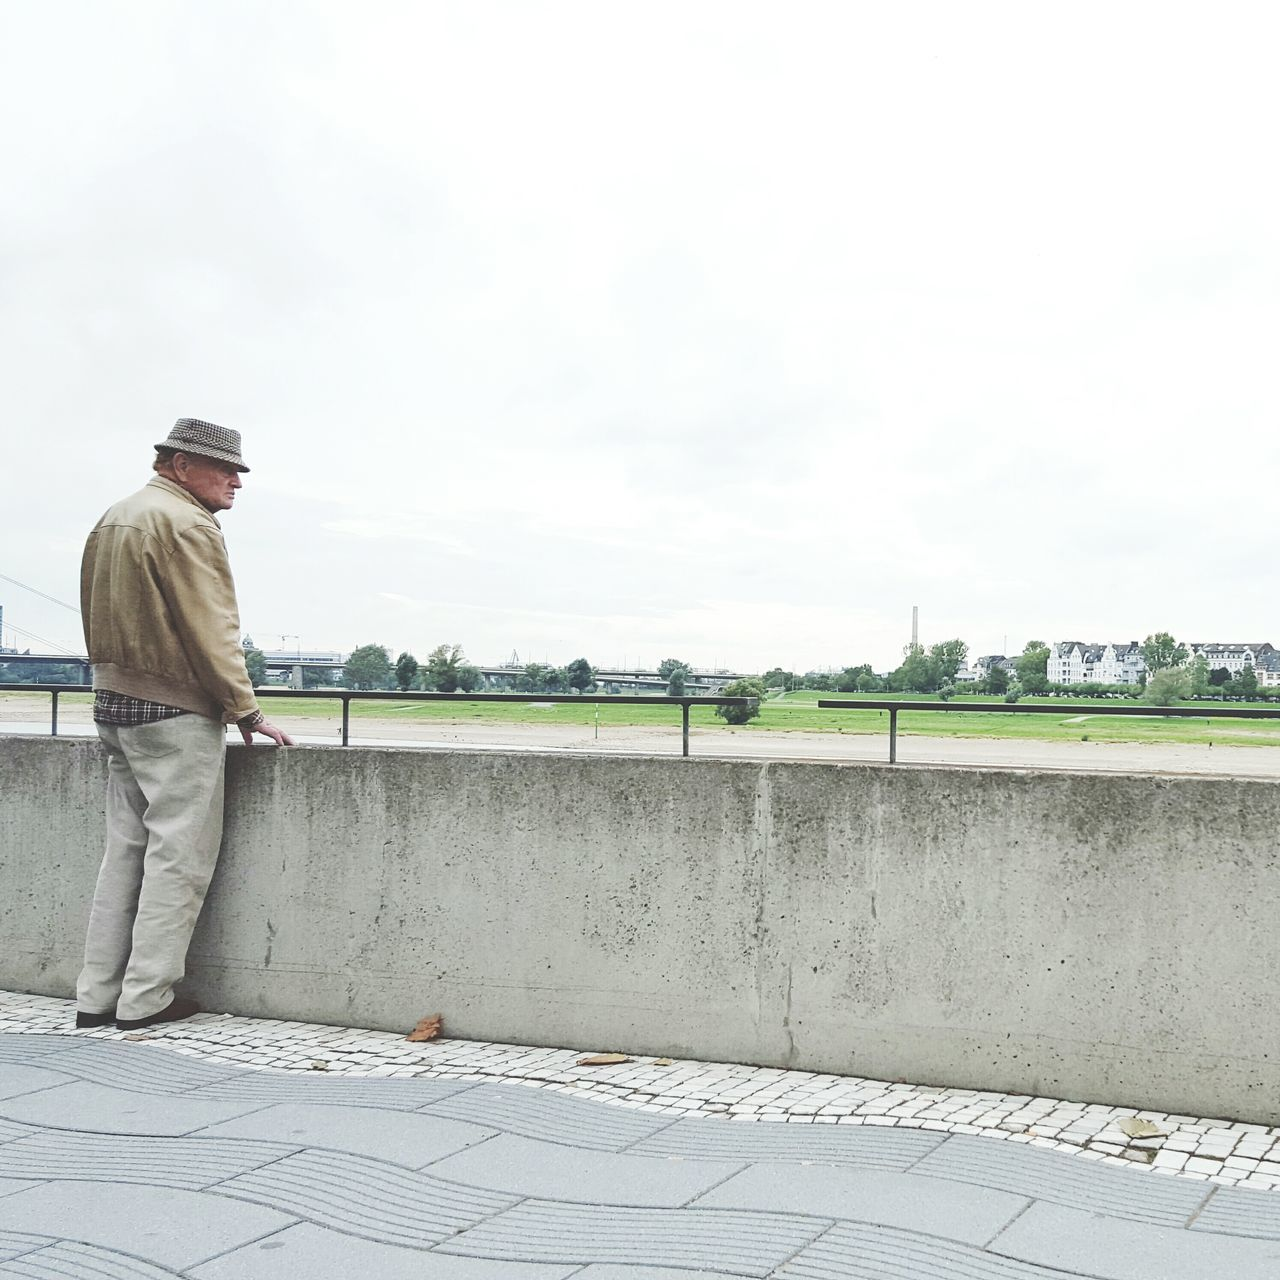 When people match places. The Portraitist - 2016 EyeEm Awards The Architect - 2016 EyeEm Awards Old Man Standing Next To A Wall Ceiling Wearing Hat Architectural Detail Floor Concrete Stone Floor Lines & Curves Silhouette Of A Man Urban Landscape Urban Geometry Pavement Waiting For Something Enjoying The View Stroller Textures And Surfaces From My Point Of View EyeEm Best Shots Facades Light Colors Shades Of Grey Architecture